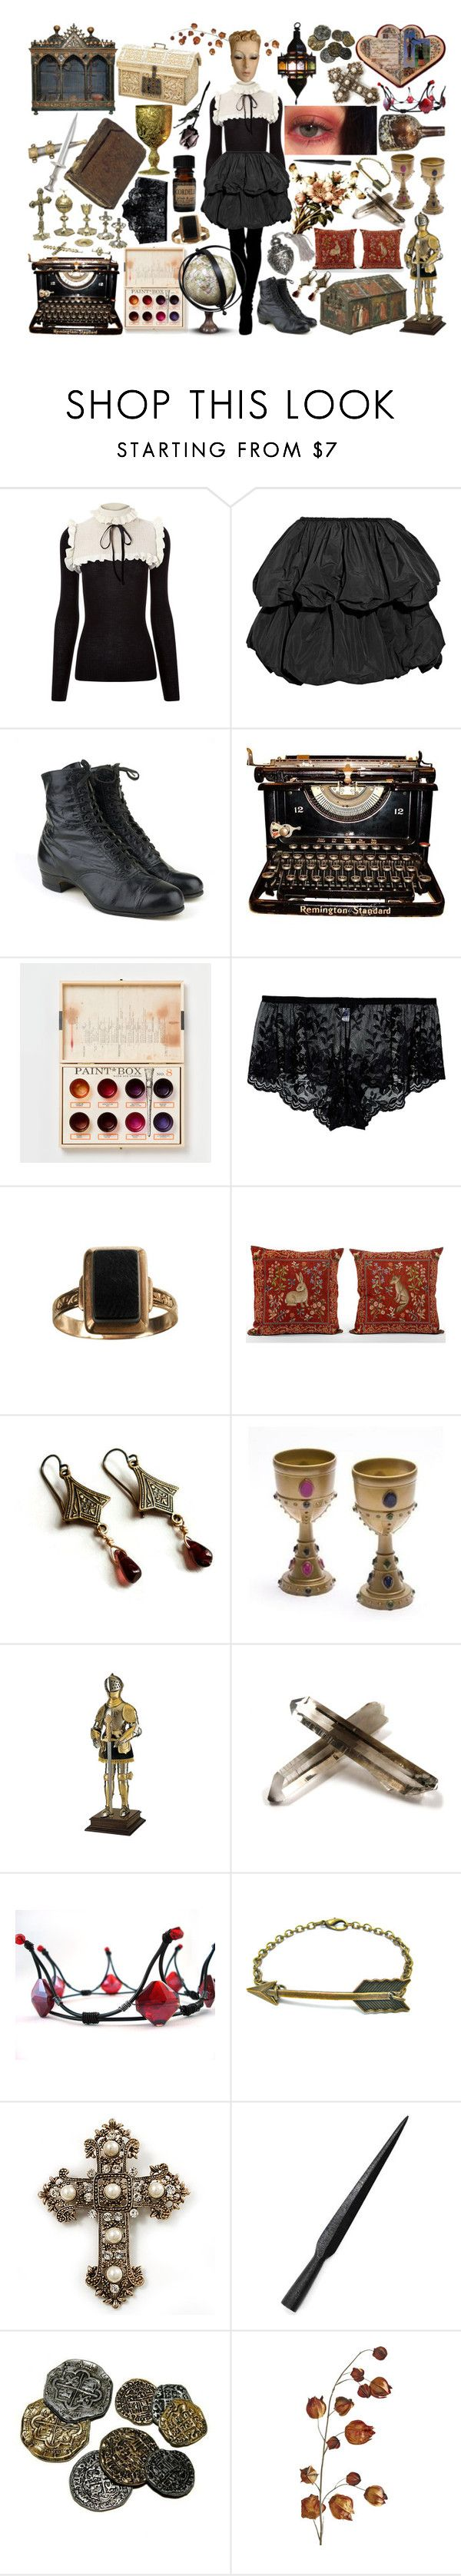 """""""Medieval city walk"""" by hecate-de-lagina on Polyvore featuring Philosophy di Lorenzo Serafini, Carven, Remington, Cosabella, Lab, Buccellati, Max Factor, Avalaya, ELSE y Pier 1 Imports"""